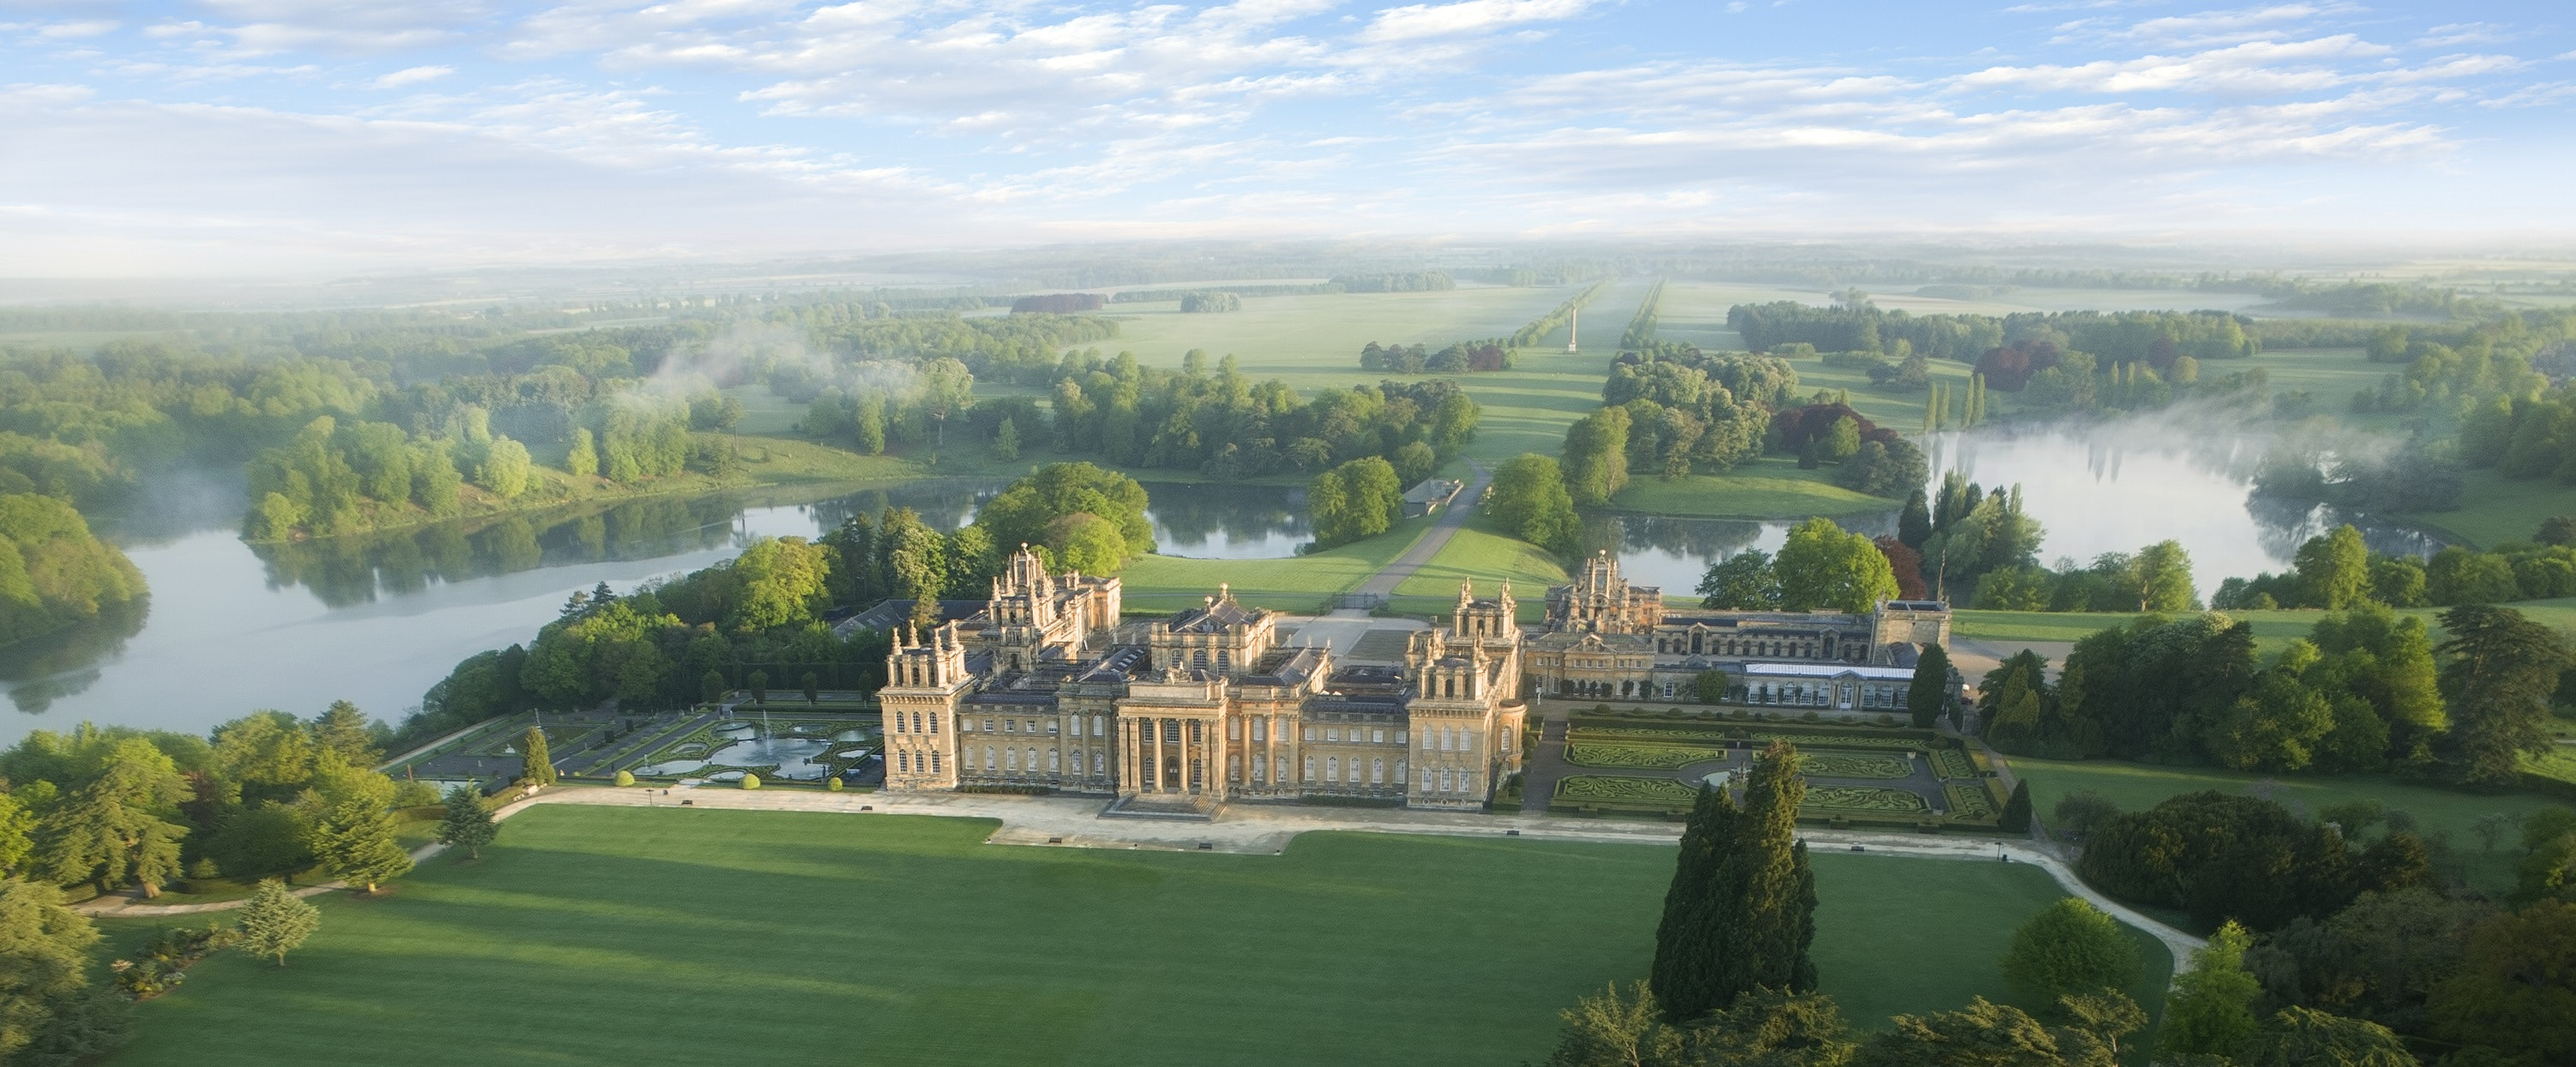 Press blenheim palace park and gardens south lawn aerial  2